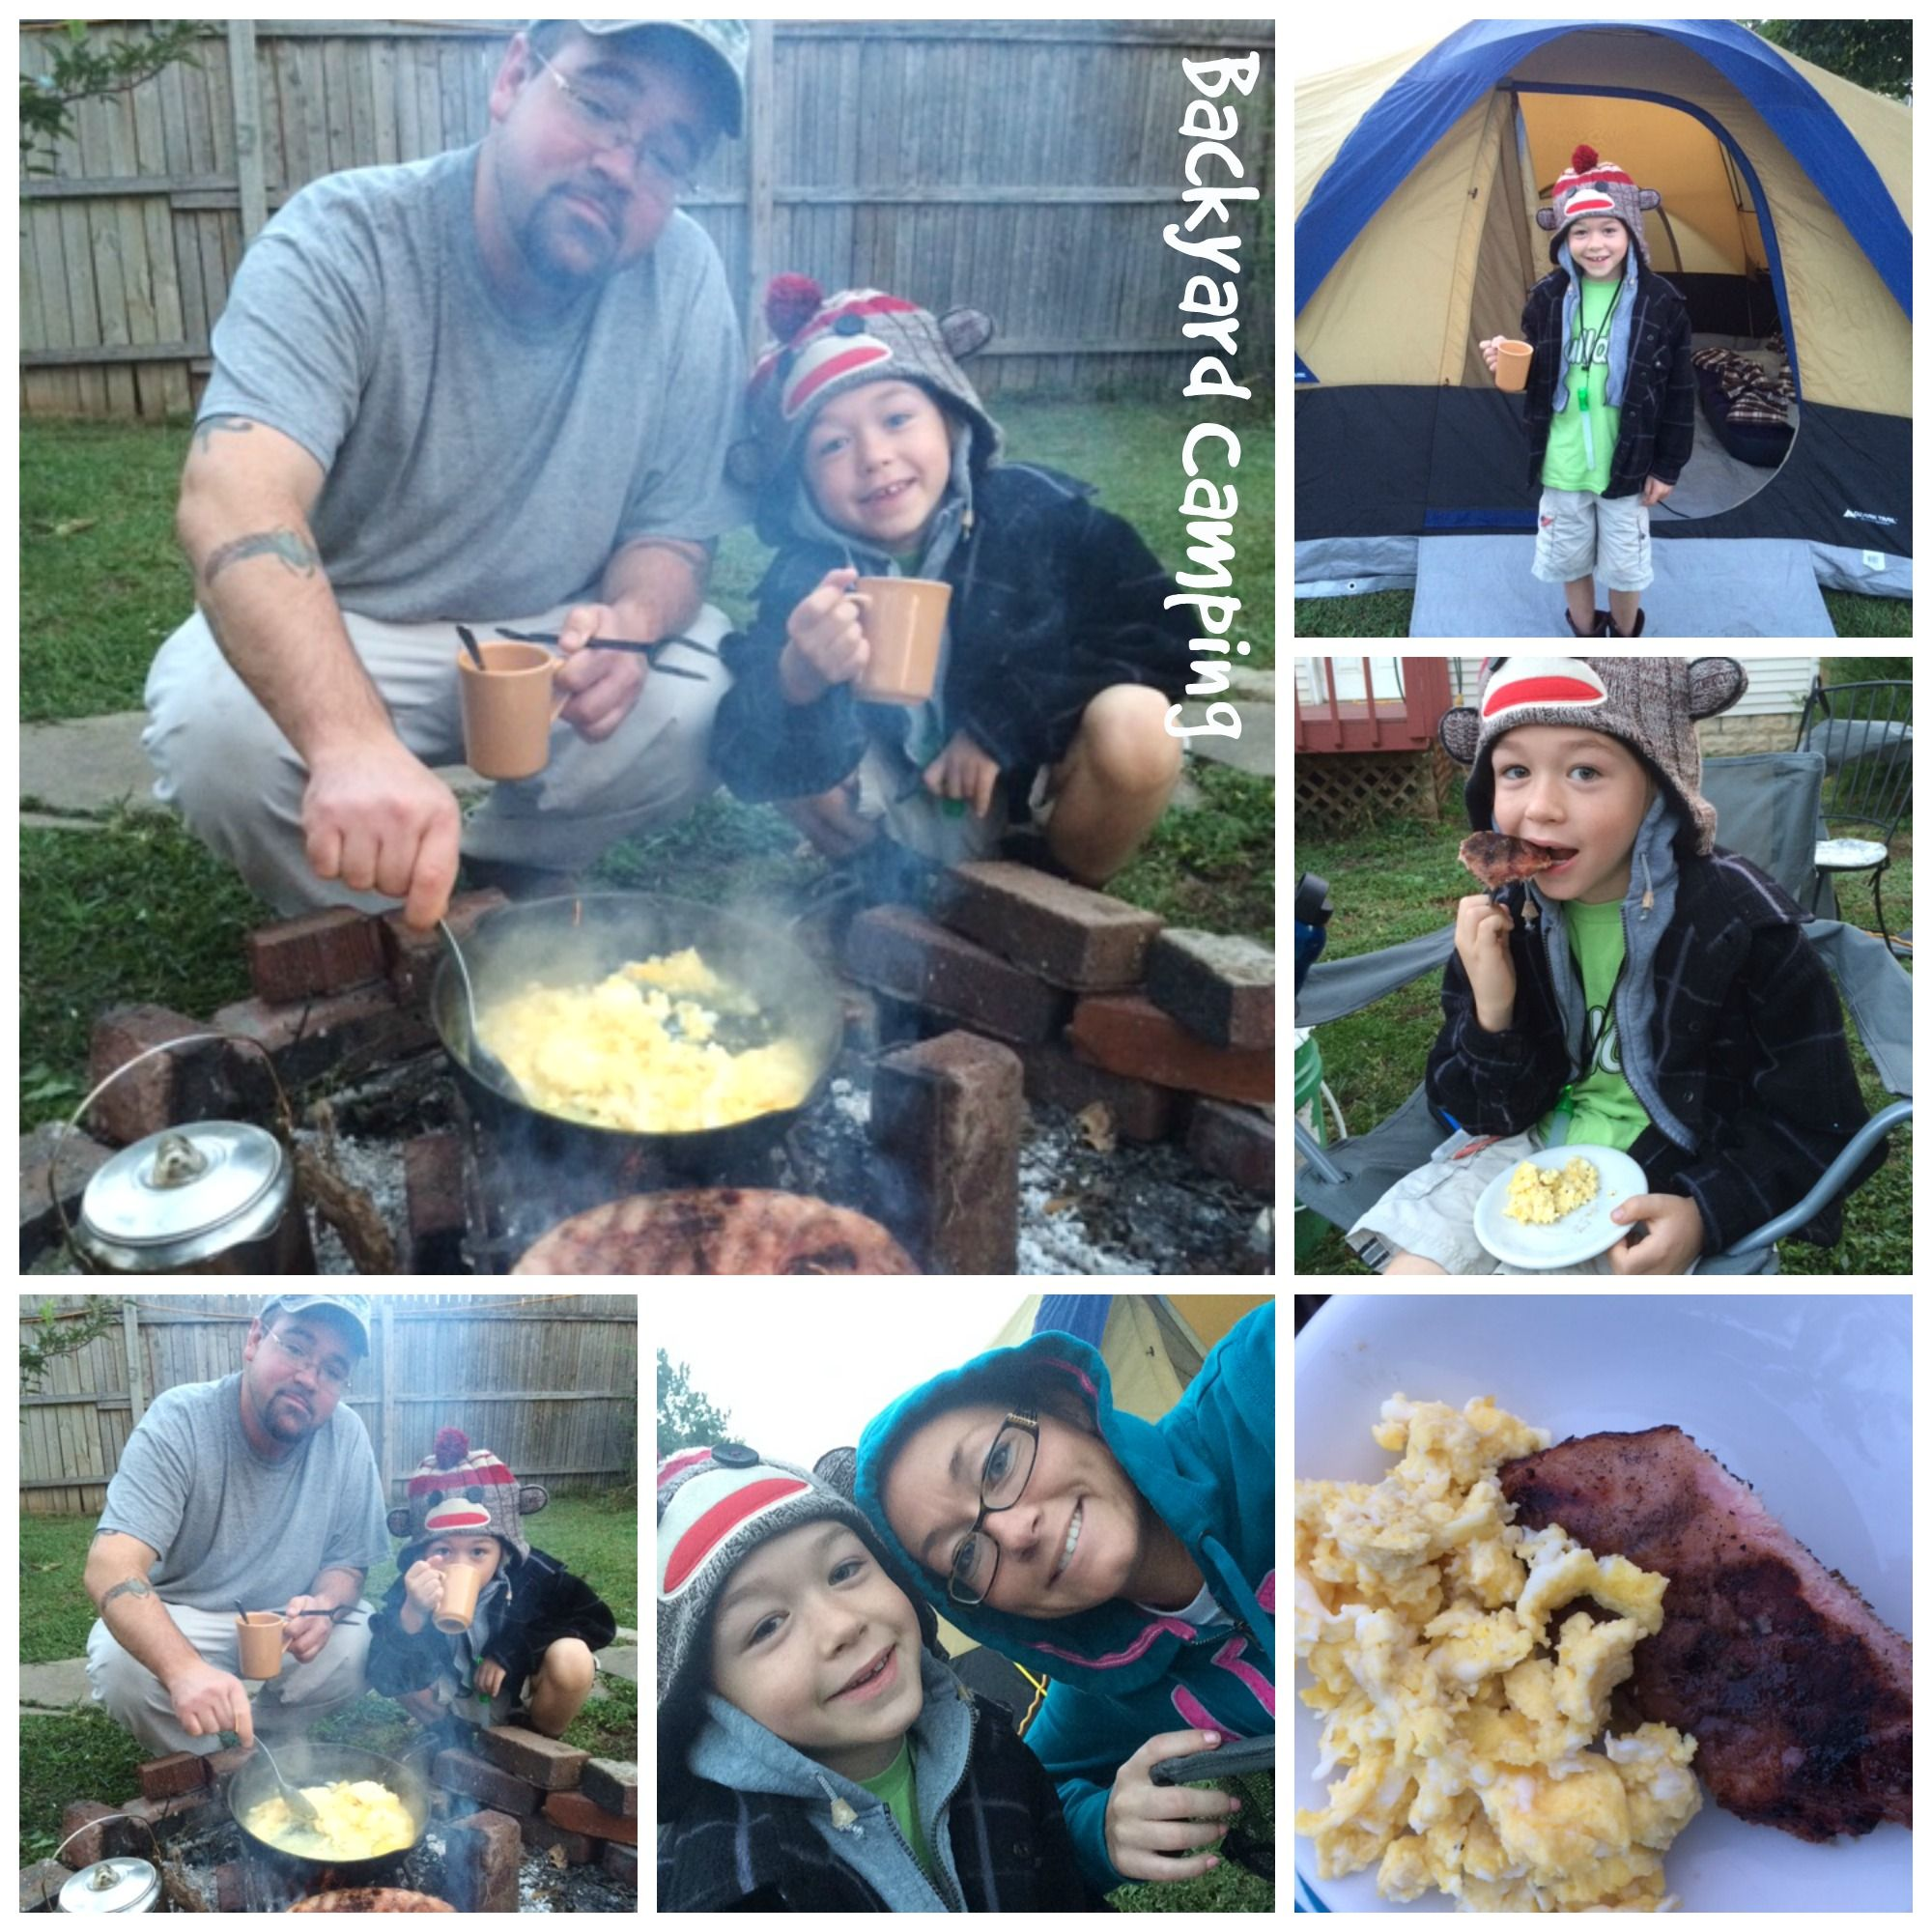 Nothing like camping in the back yard on a cold day near a ...